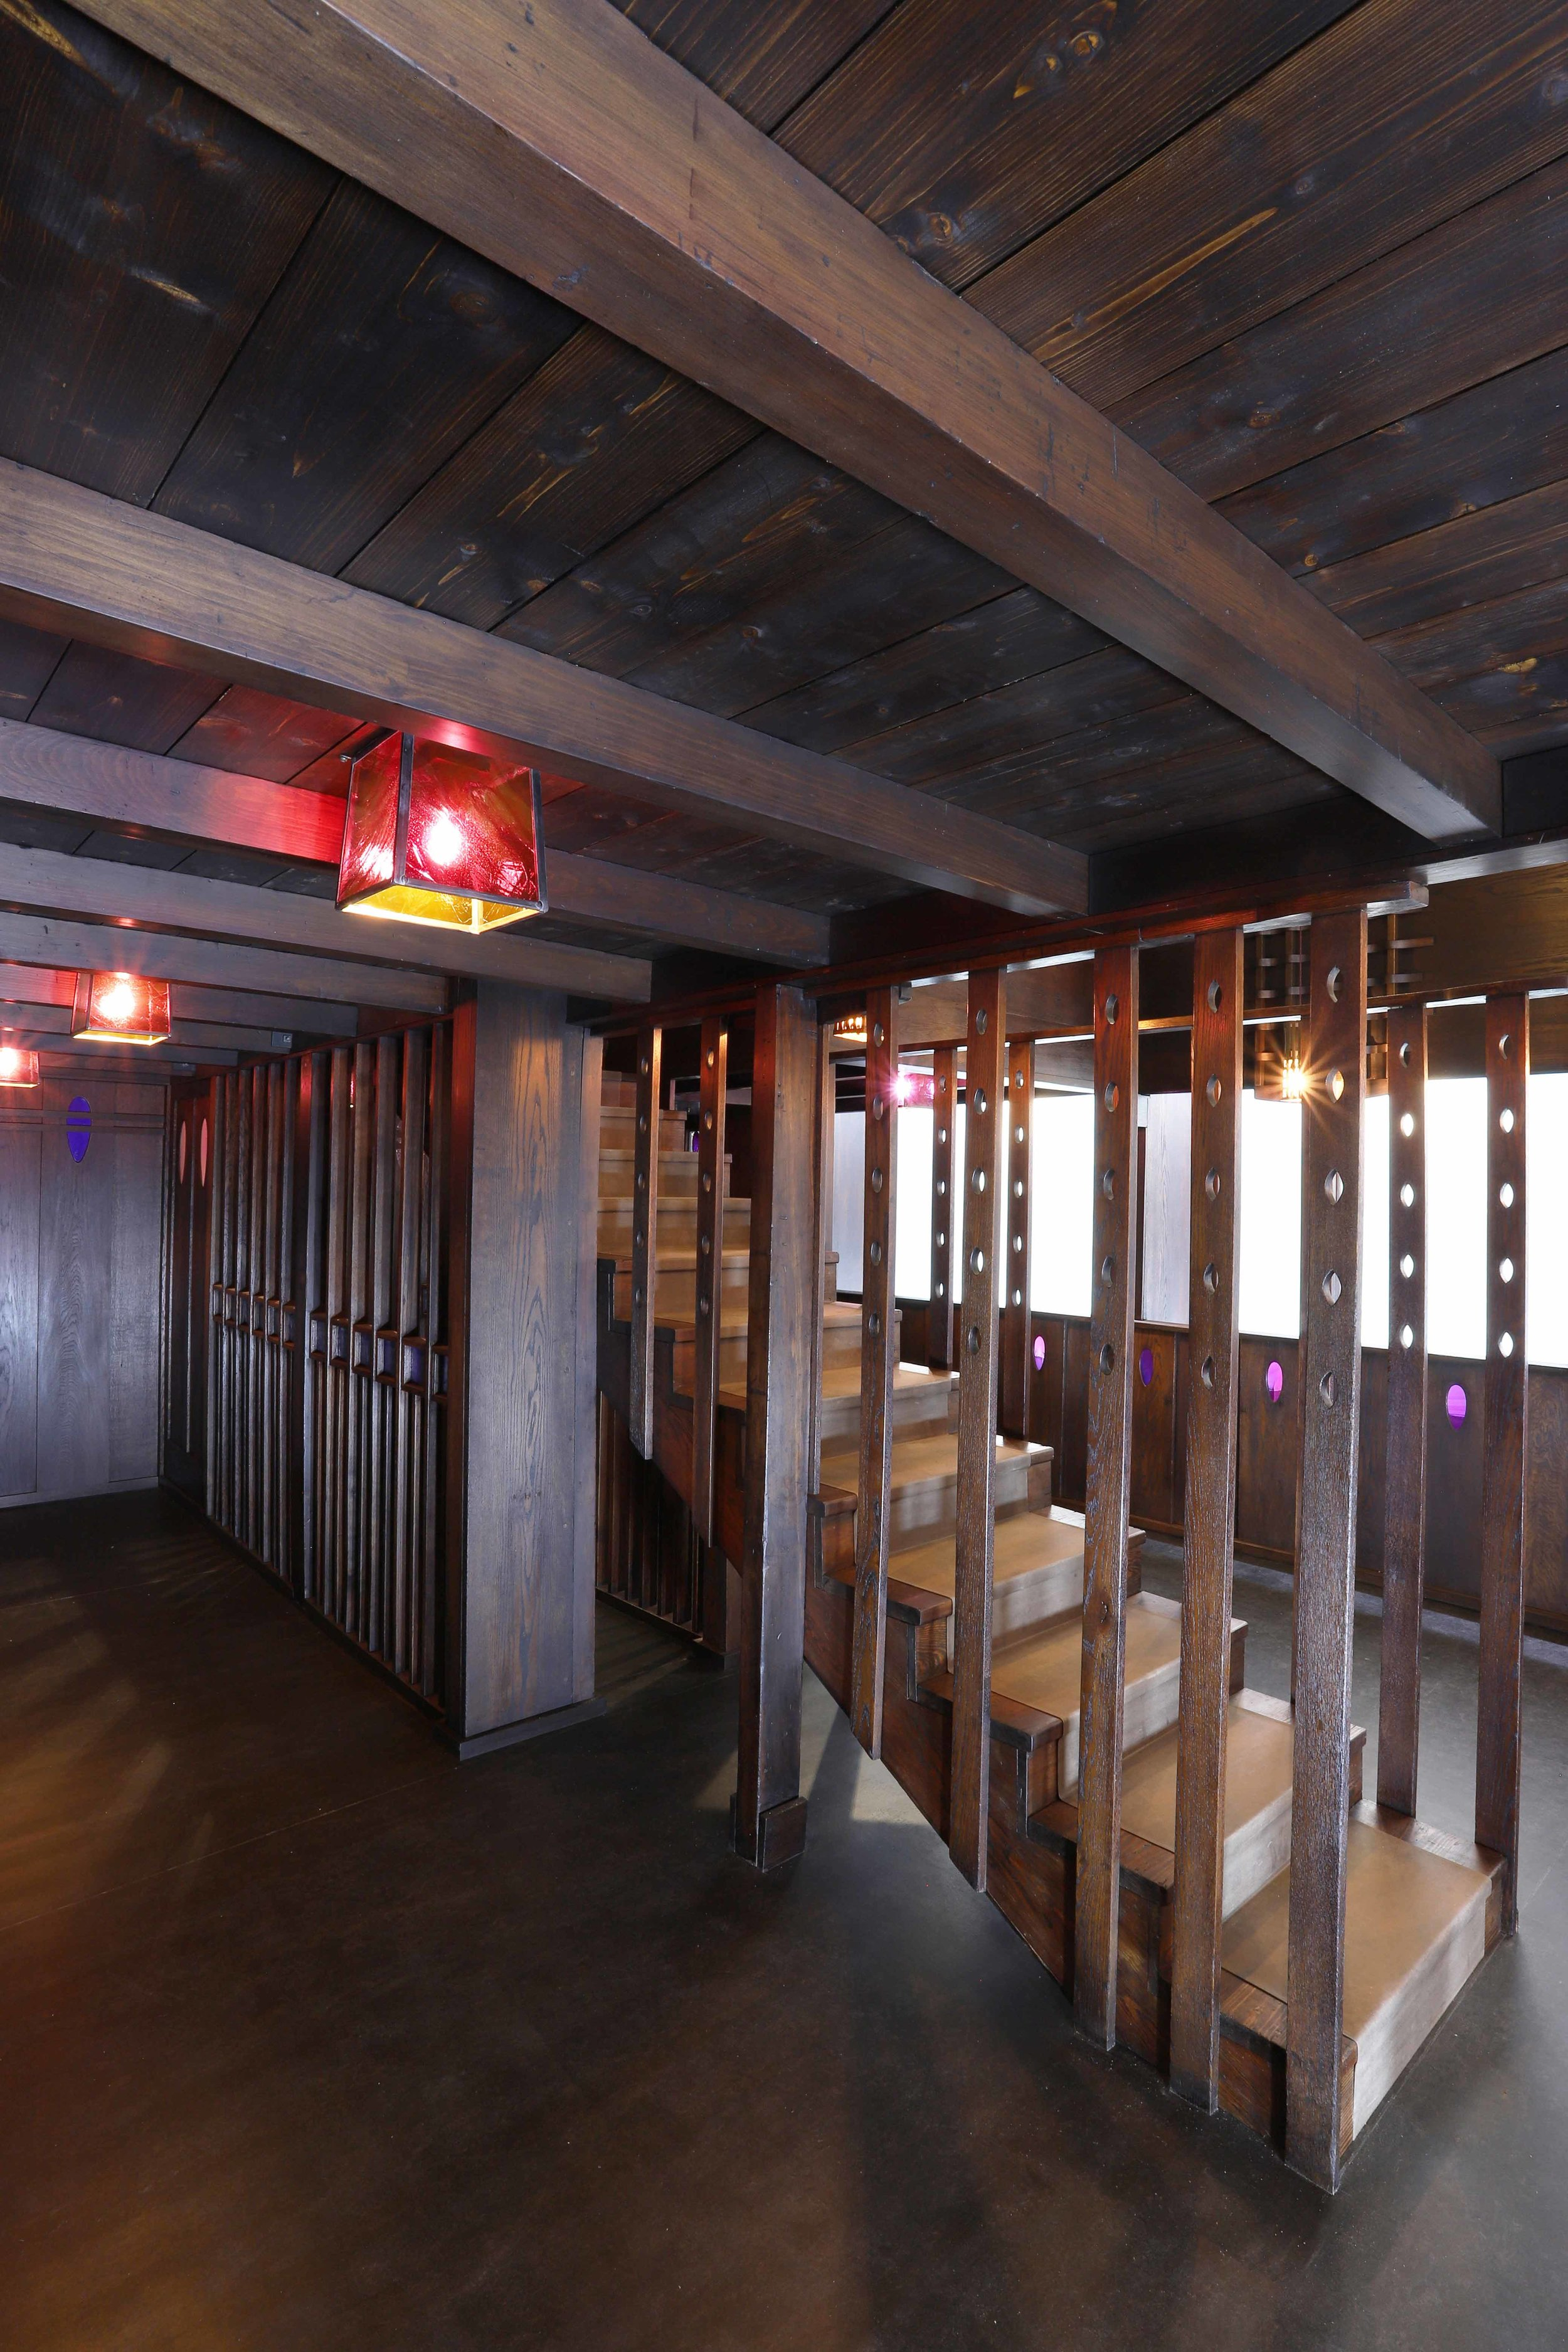 Reconstruction and conservation of Charles Rennie Mackintosh tea room for the V&A Museum Dundee.